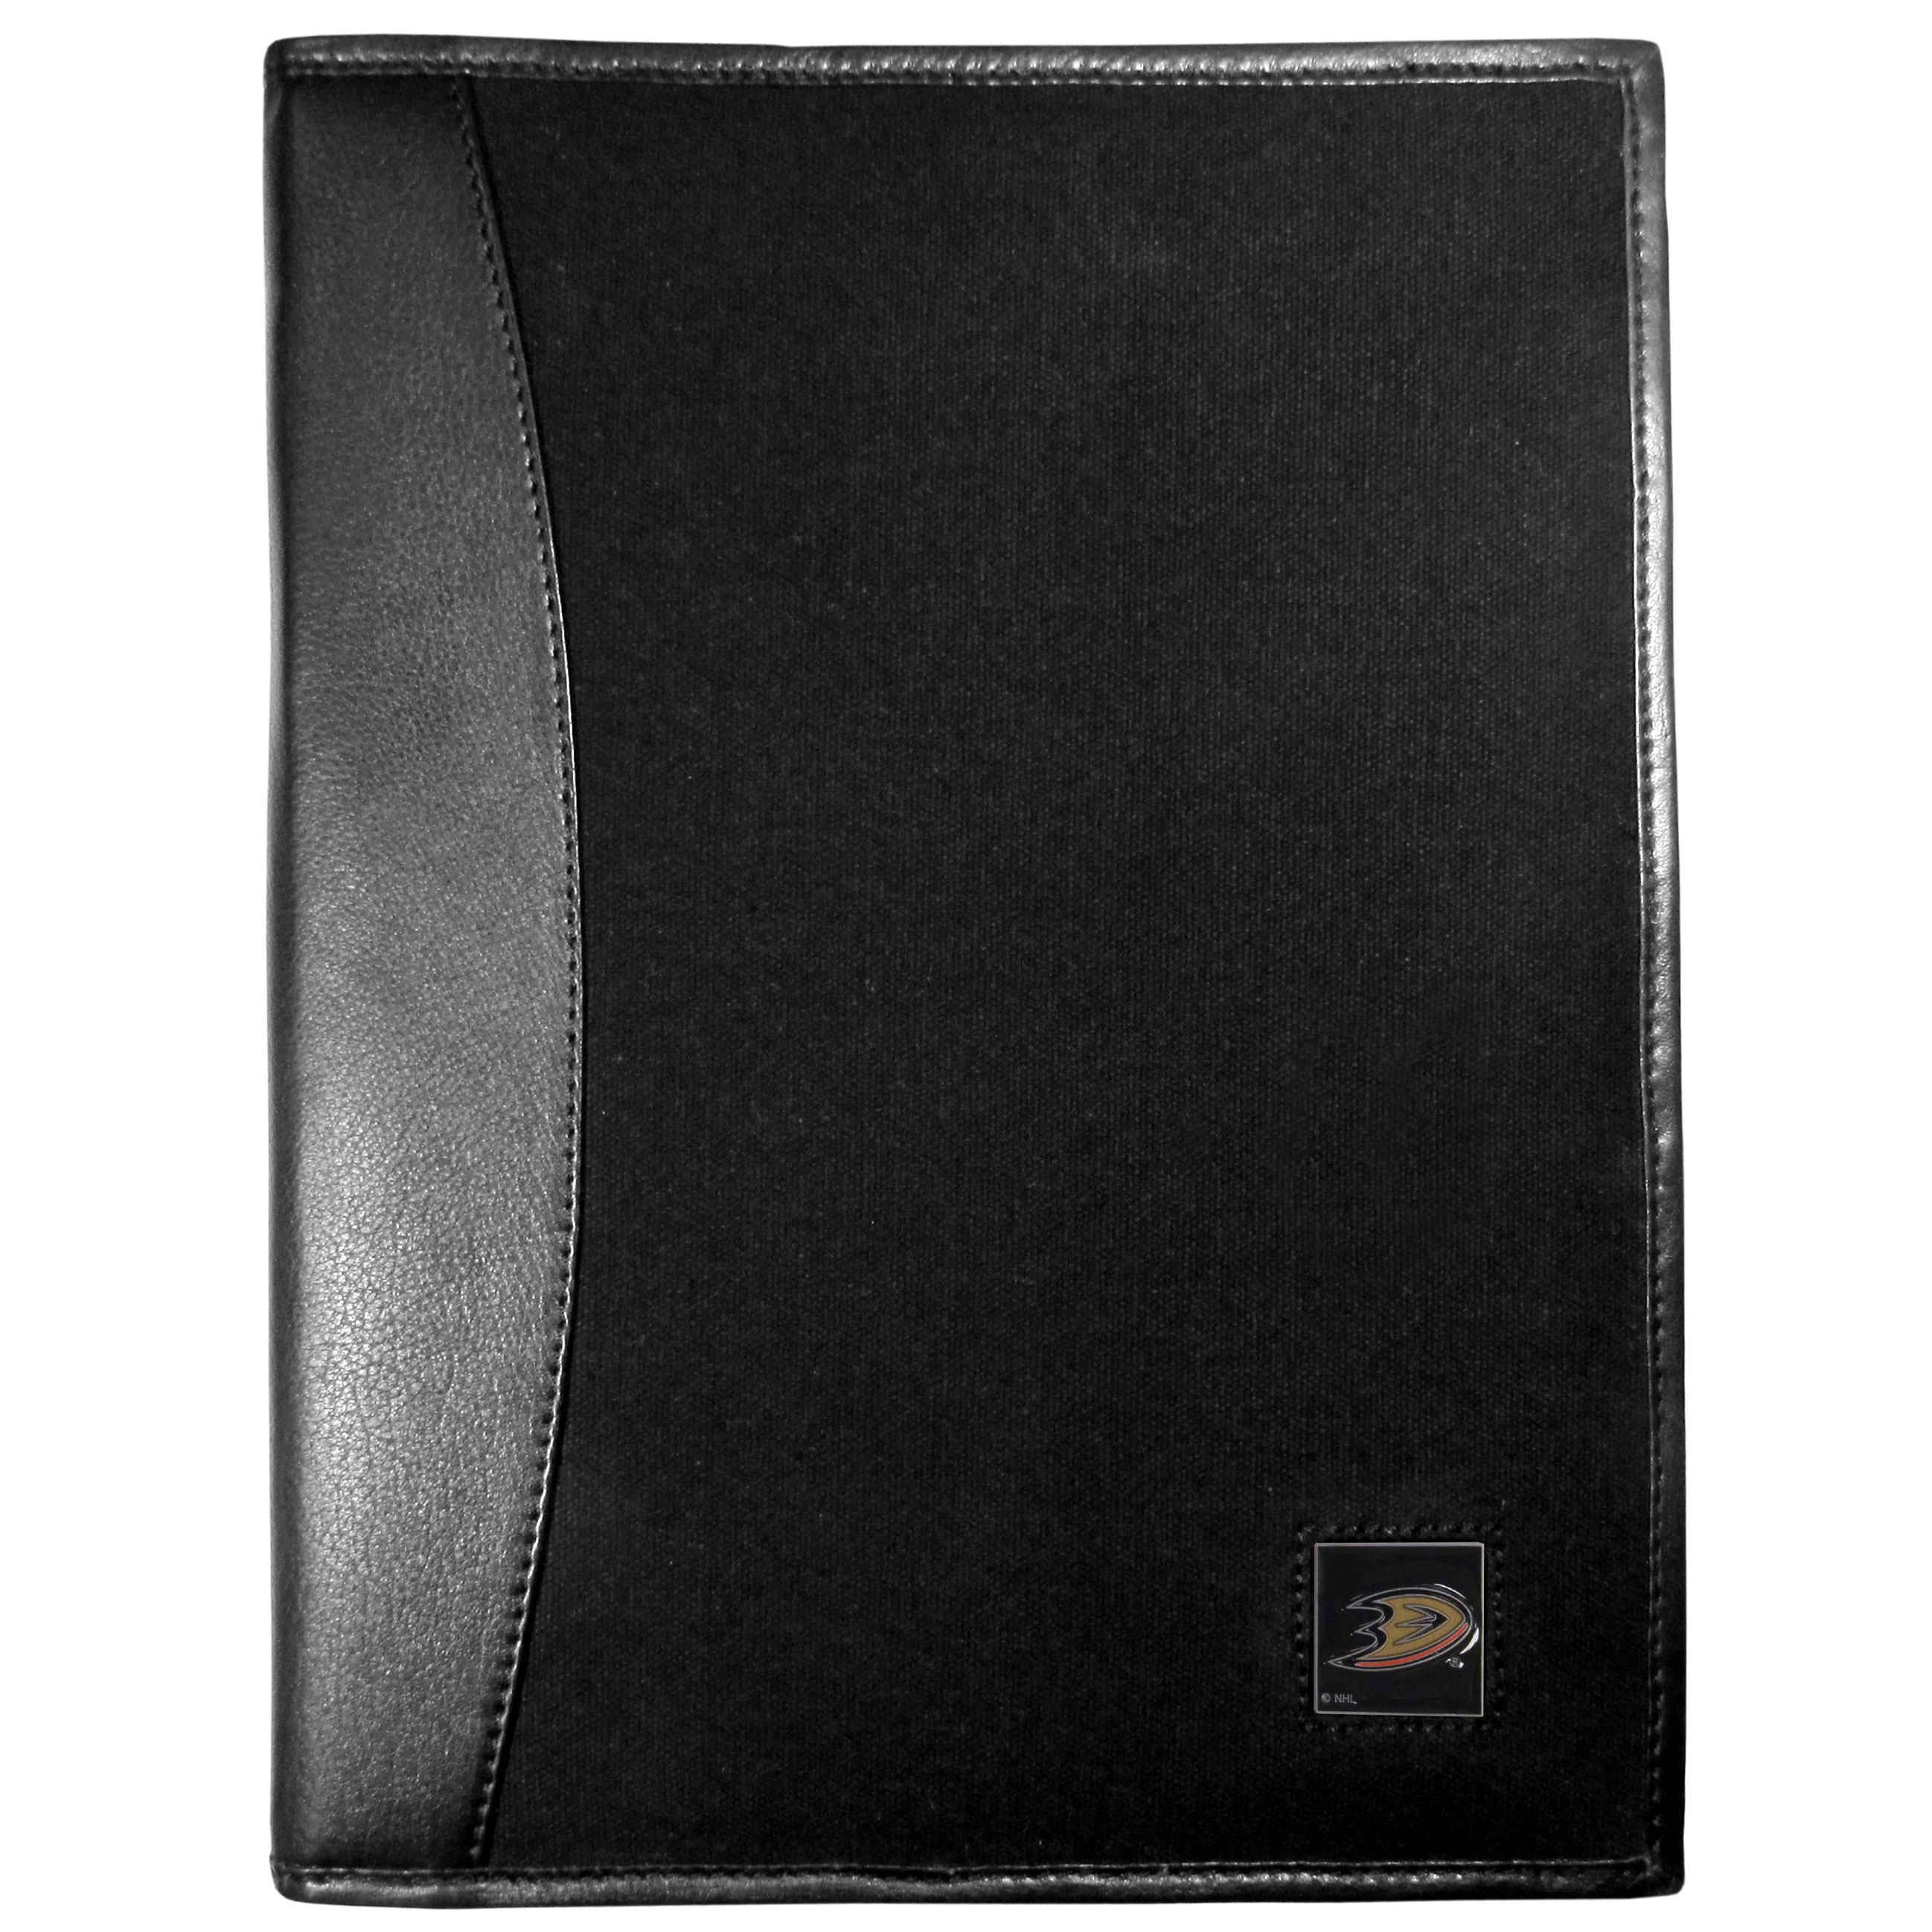 Anaheim Ducks® Leather and Canvas Padfolio - Our leather and canvas padfolio perfectly blends form and function. The attractive portfolio is bound in fine grain leather with an attractive canvas finish and the interior is a soft nylon. This high quality business accessory also features a fully cast metal Anaheim Ducks® emblem that is subtly set in the corner of the organizer. It is packed with features like 6 card slots for badges, business cards, hotel keys or credit cards and ID with a large pocket for loose papers and a writing tablet slot making it a must-have for the professional on the go.